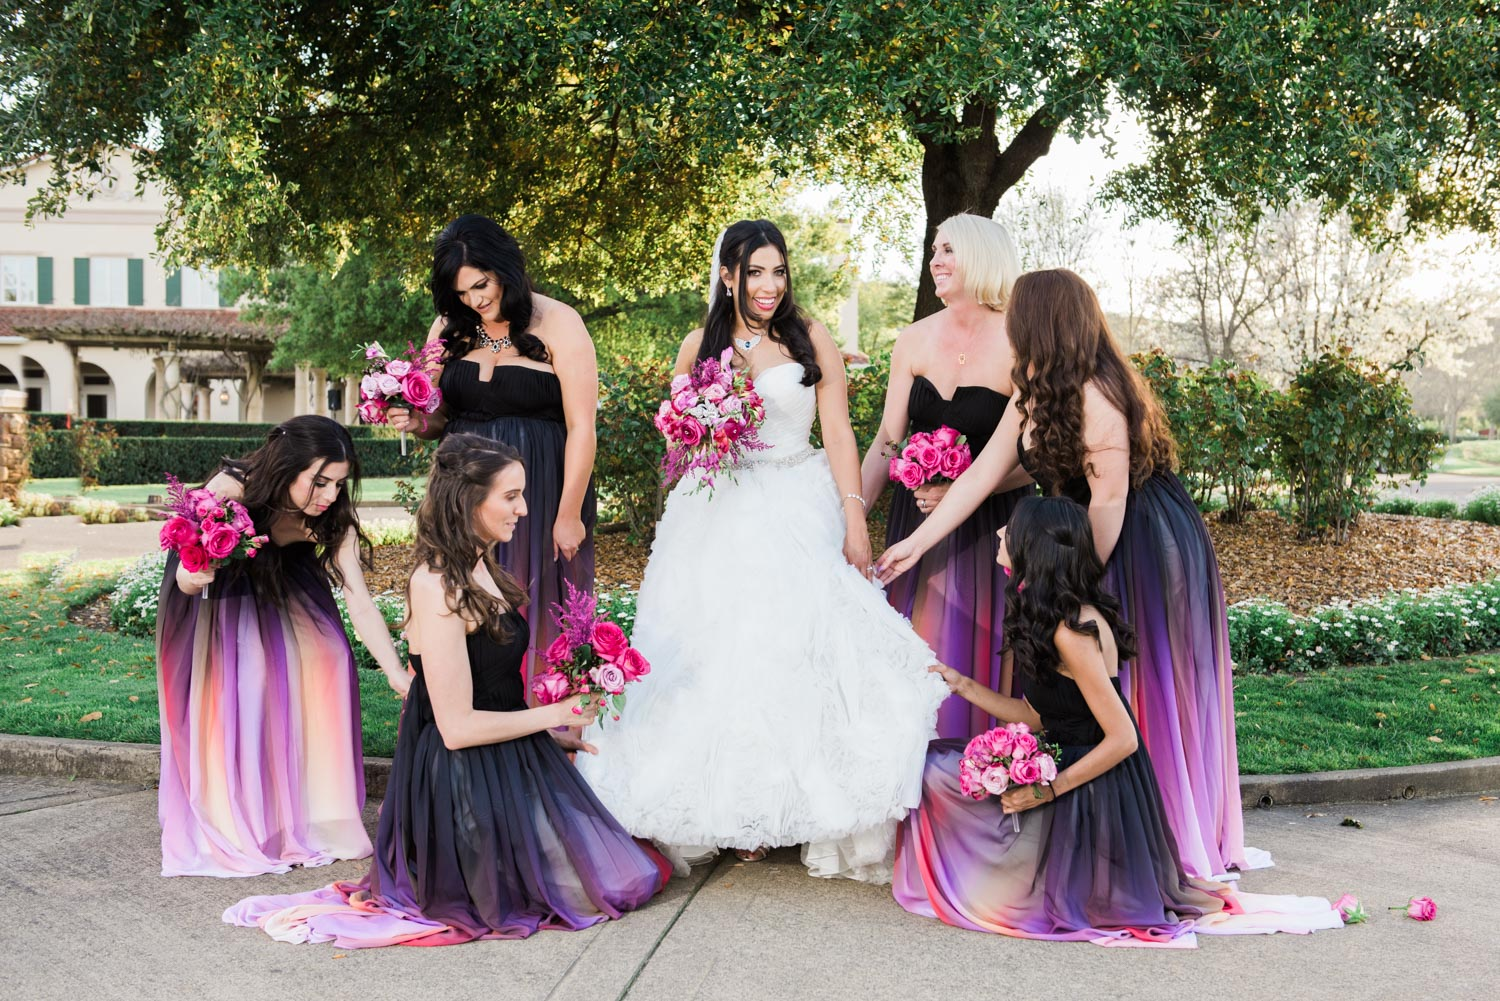 Some more pictures of the bride and her friends.